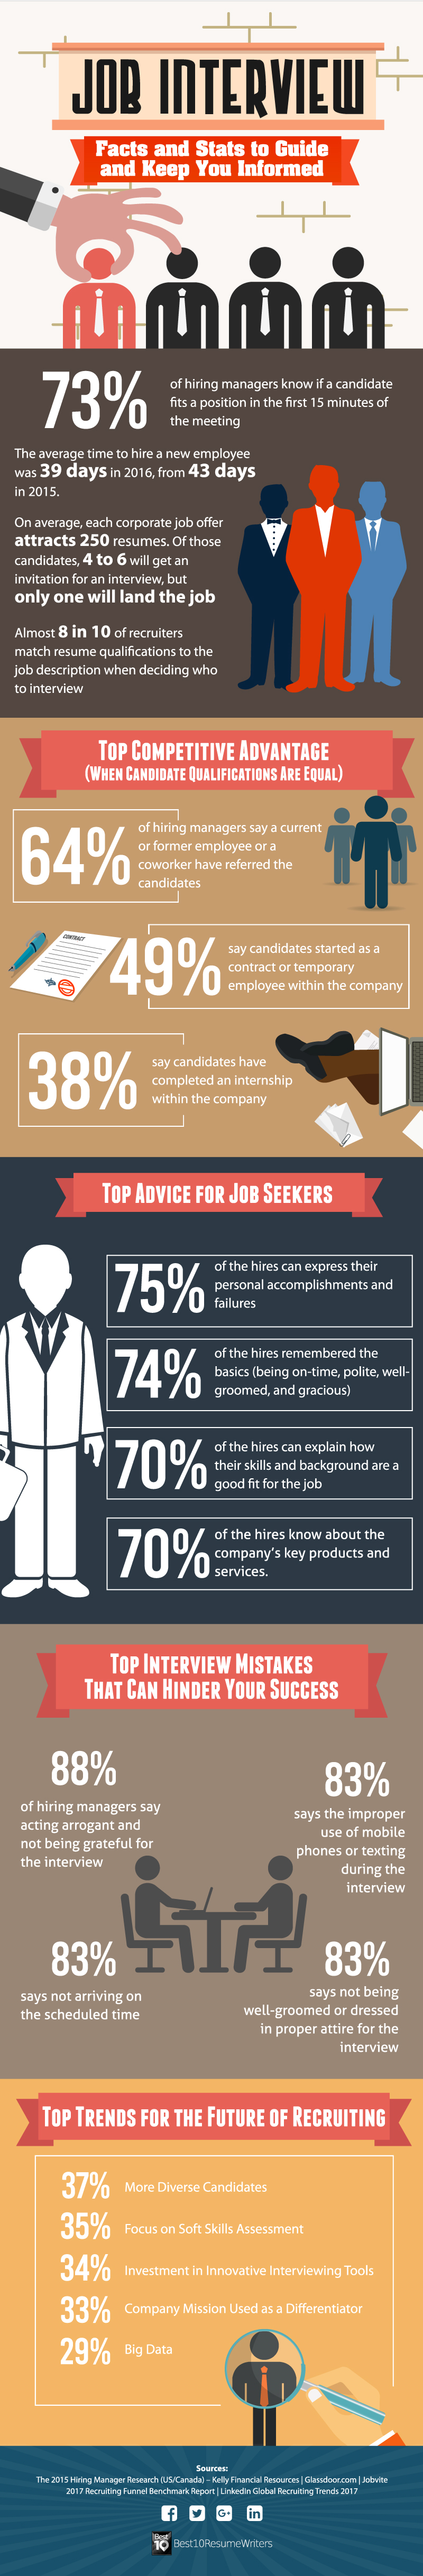 Job Interview Facts and Stats - Best10ResumeWriters